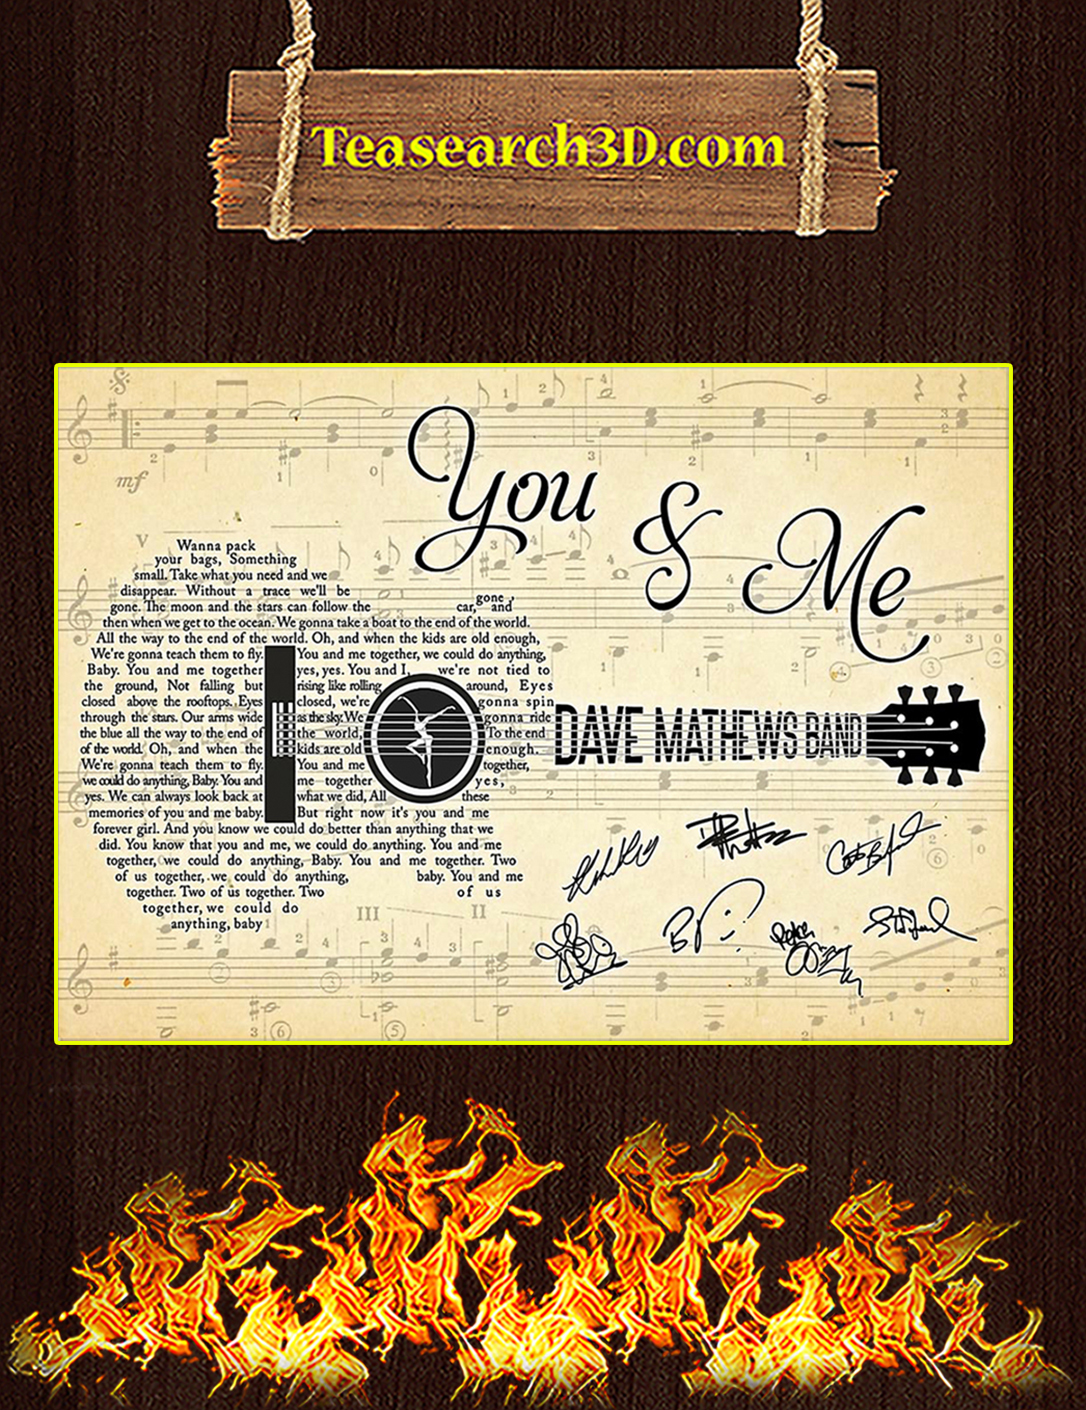 You And Me Dave Matthews Band Guitar Poster A2